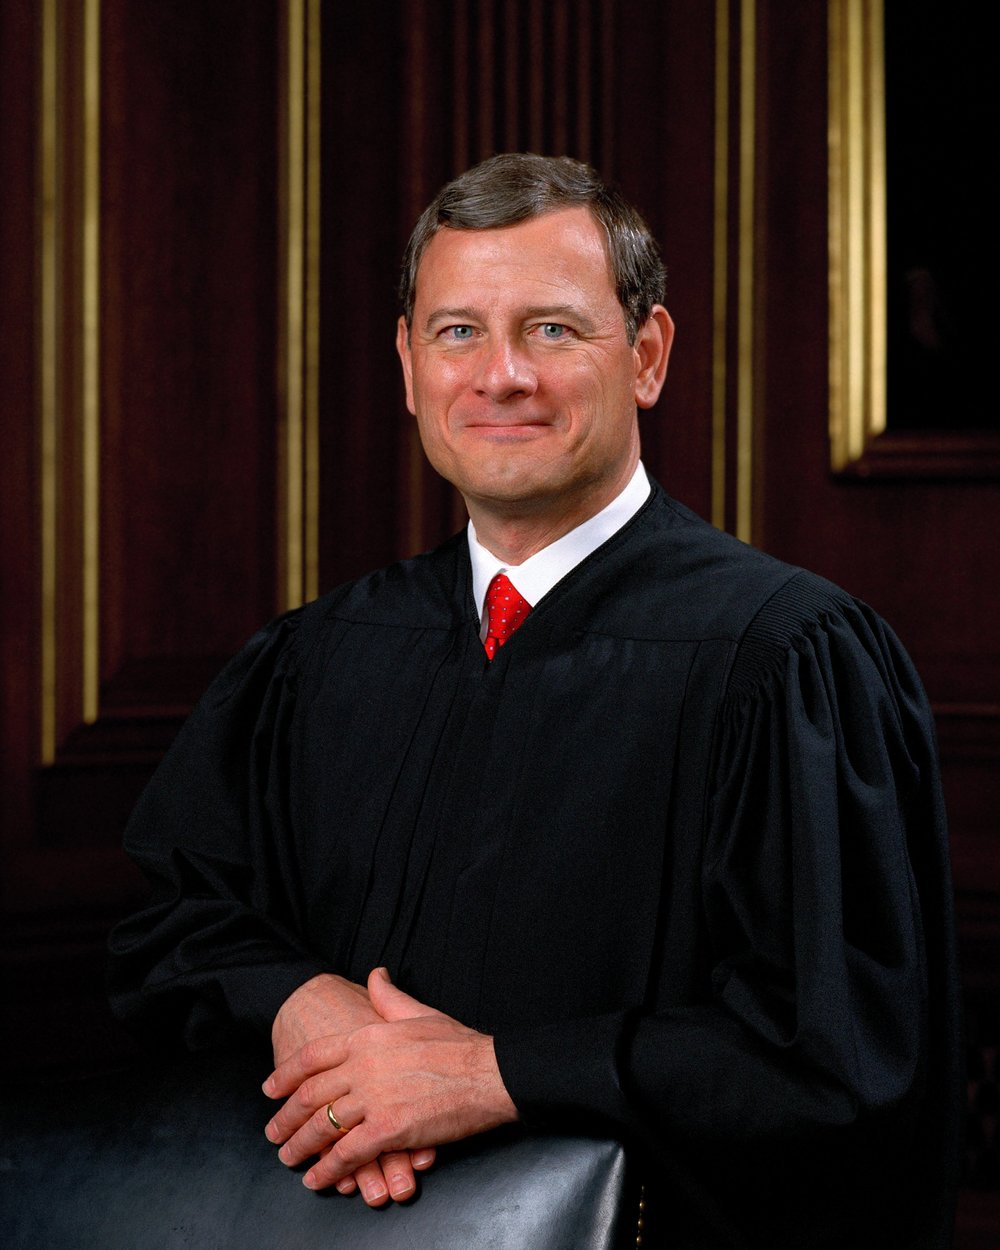 John G. Roberts Jr., chief justice of the United States Supreme Court. Photograph by Steve Petteway.